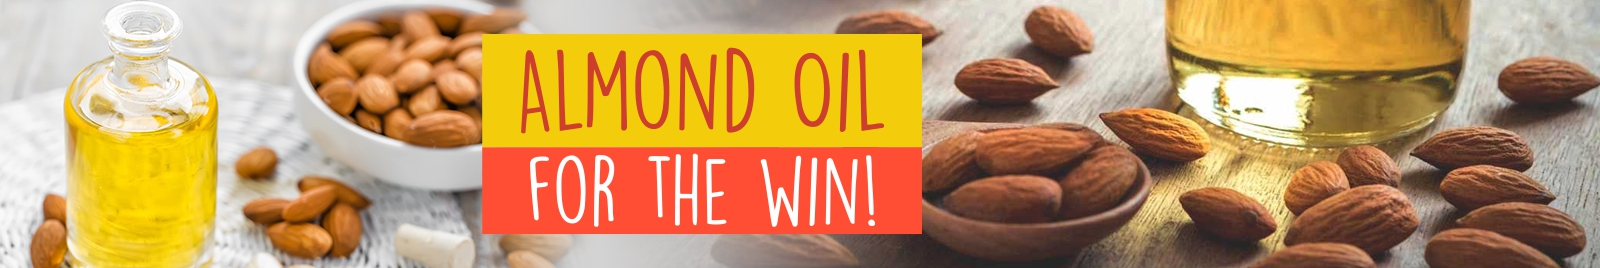 Almond Oil for the win!